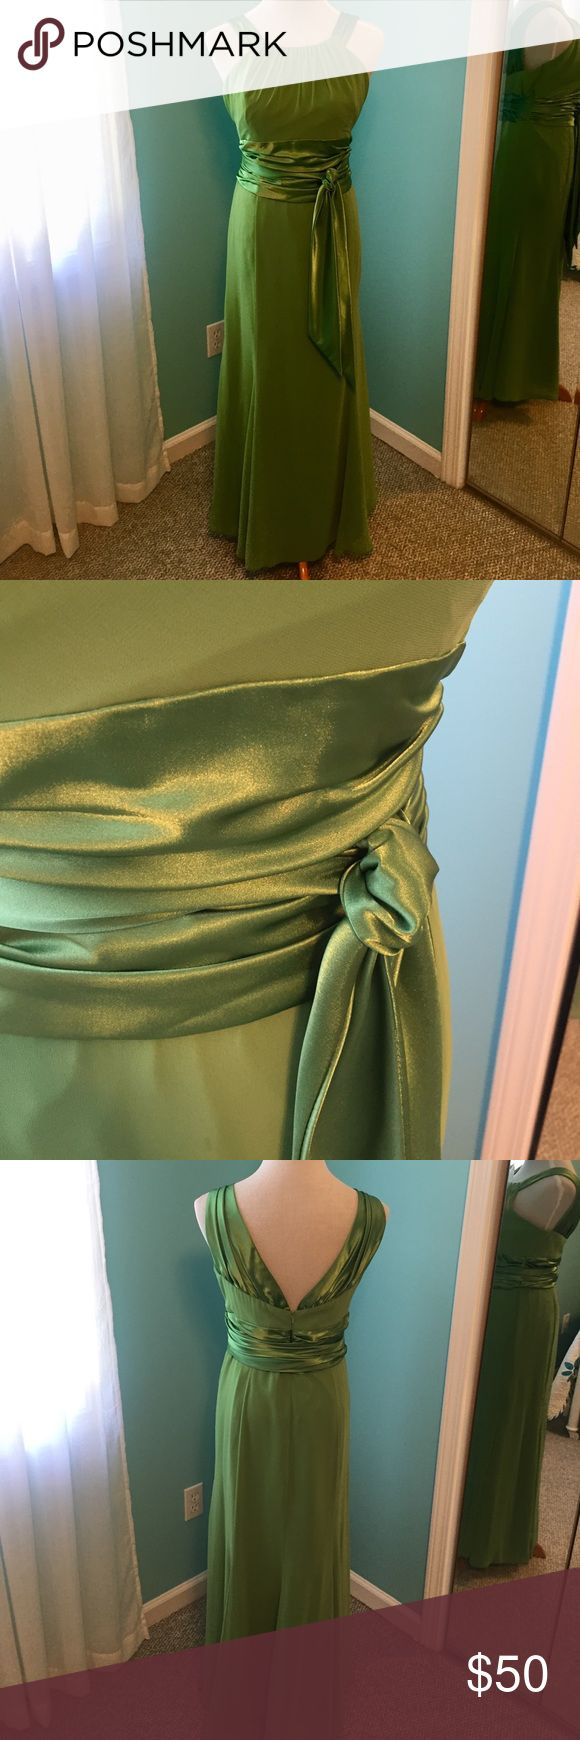 David's Bridal Green Gown David's Bridal Halter Gown. Clover green. Size 14. Attached sash. Approximate measurements: bust (armpit to armpit) 20 inches. Waist 18 inches. Hips 20 inches. Worn once for a wedding. Great for someone who is petite! David's Bridal Dresses Wedding